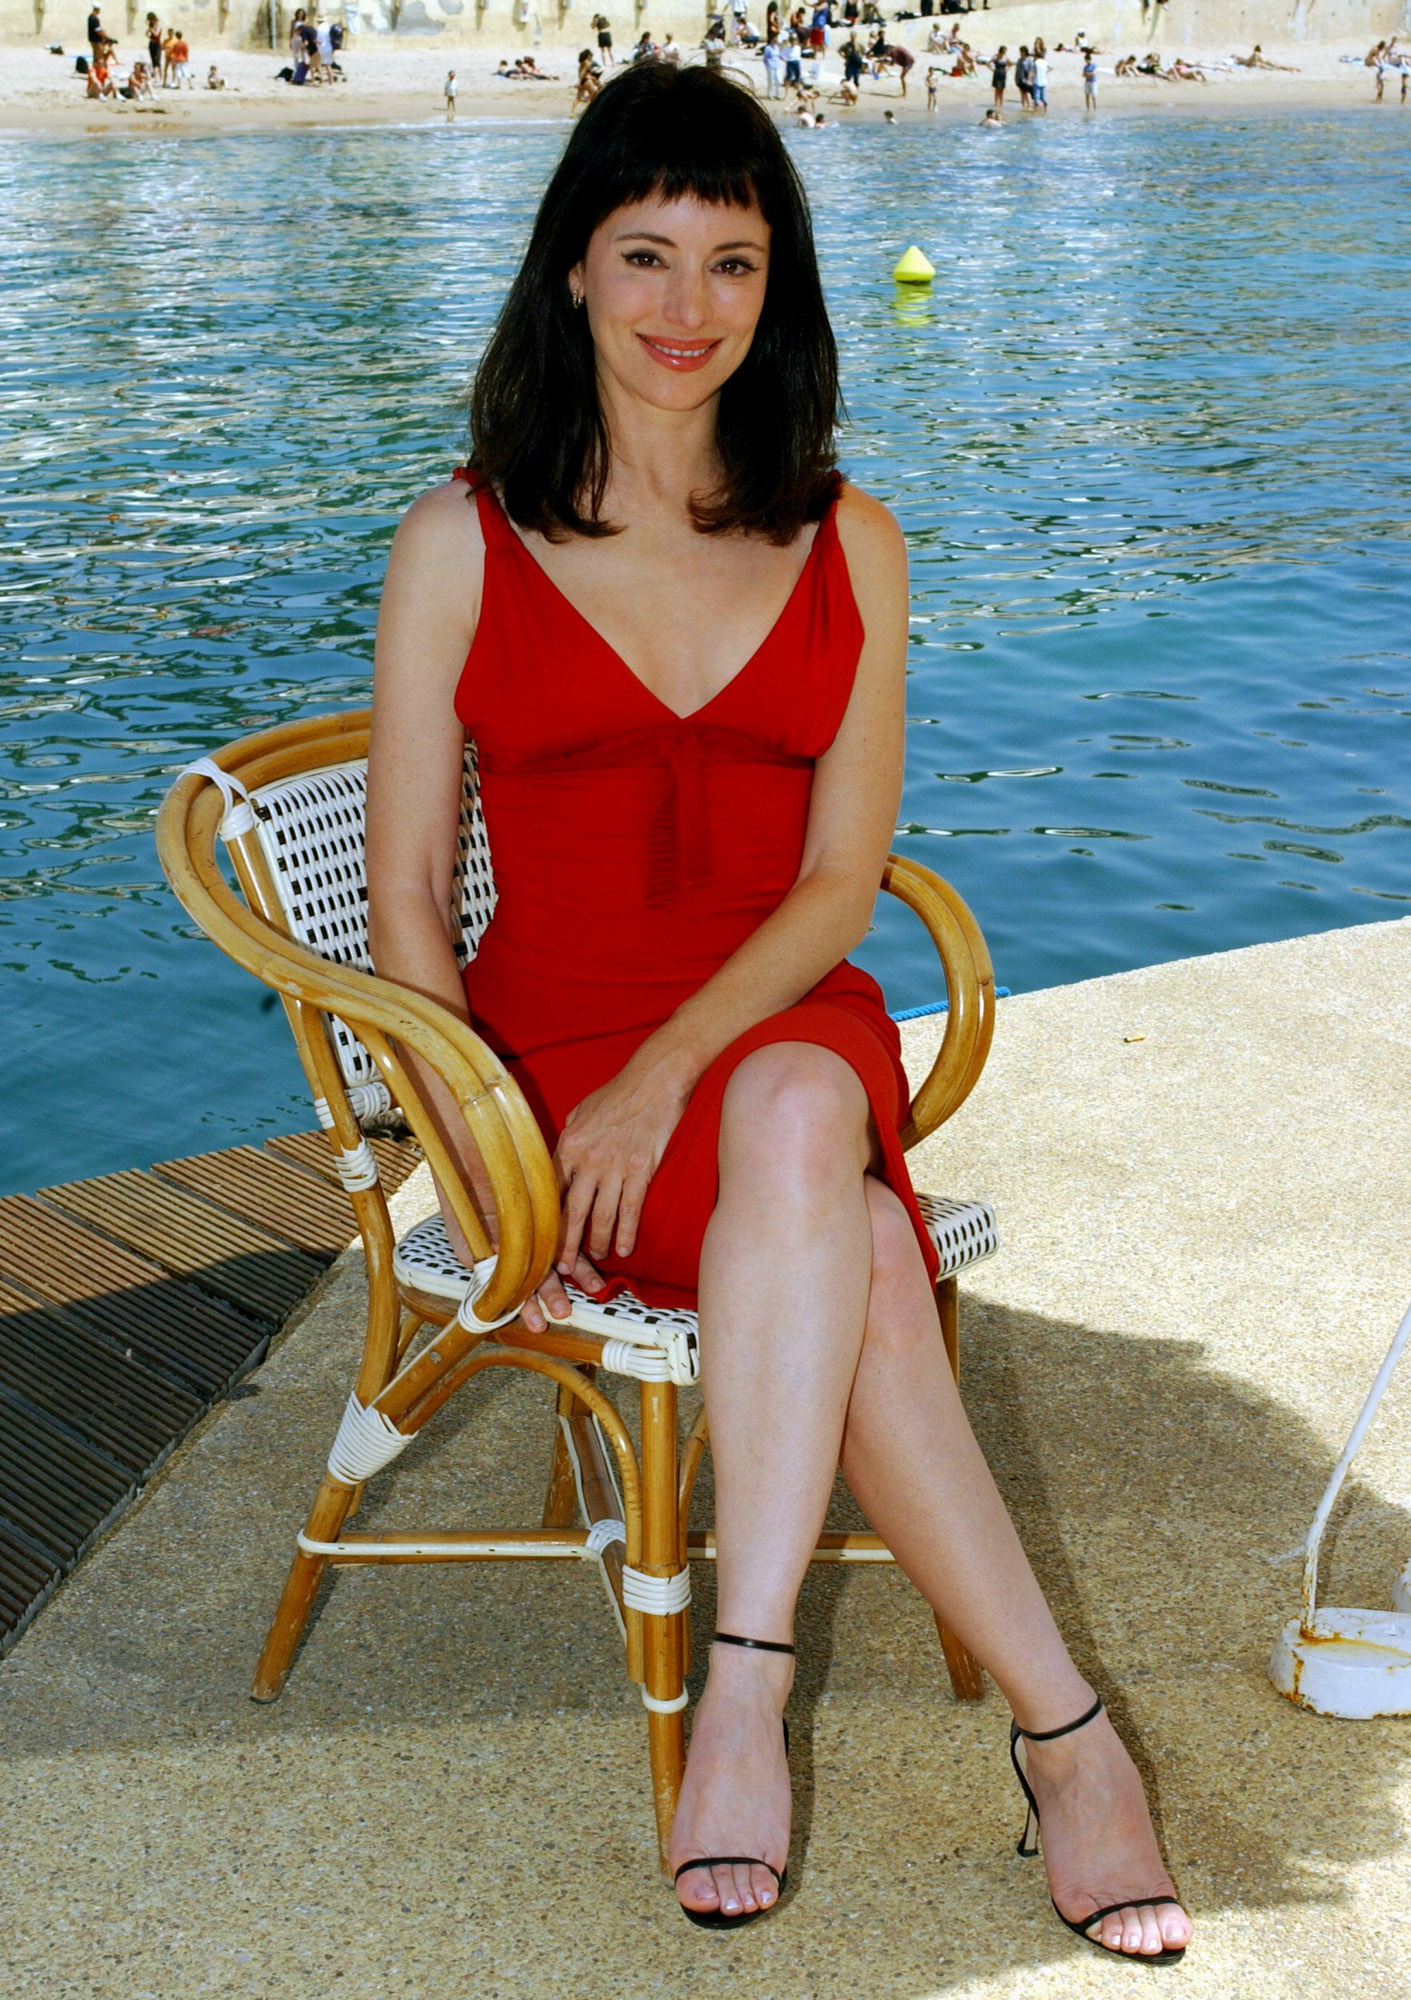 Poze Madeleine Stowe - Actor - Poza 29 din 75 - CineMagia.ro